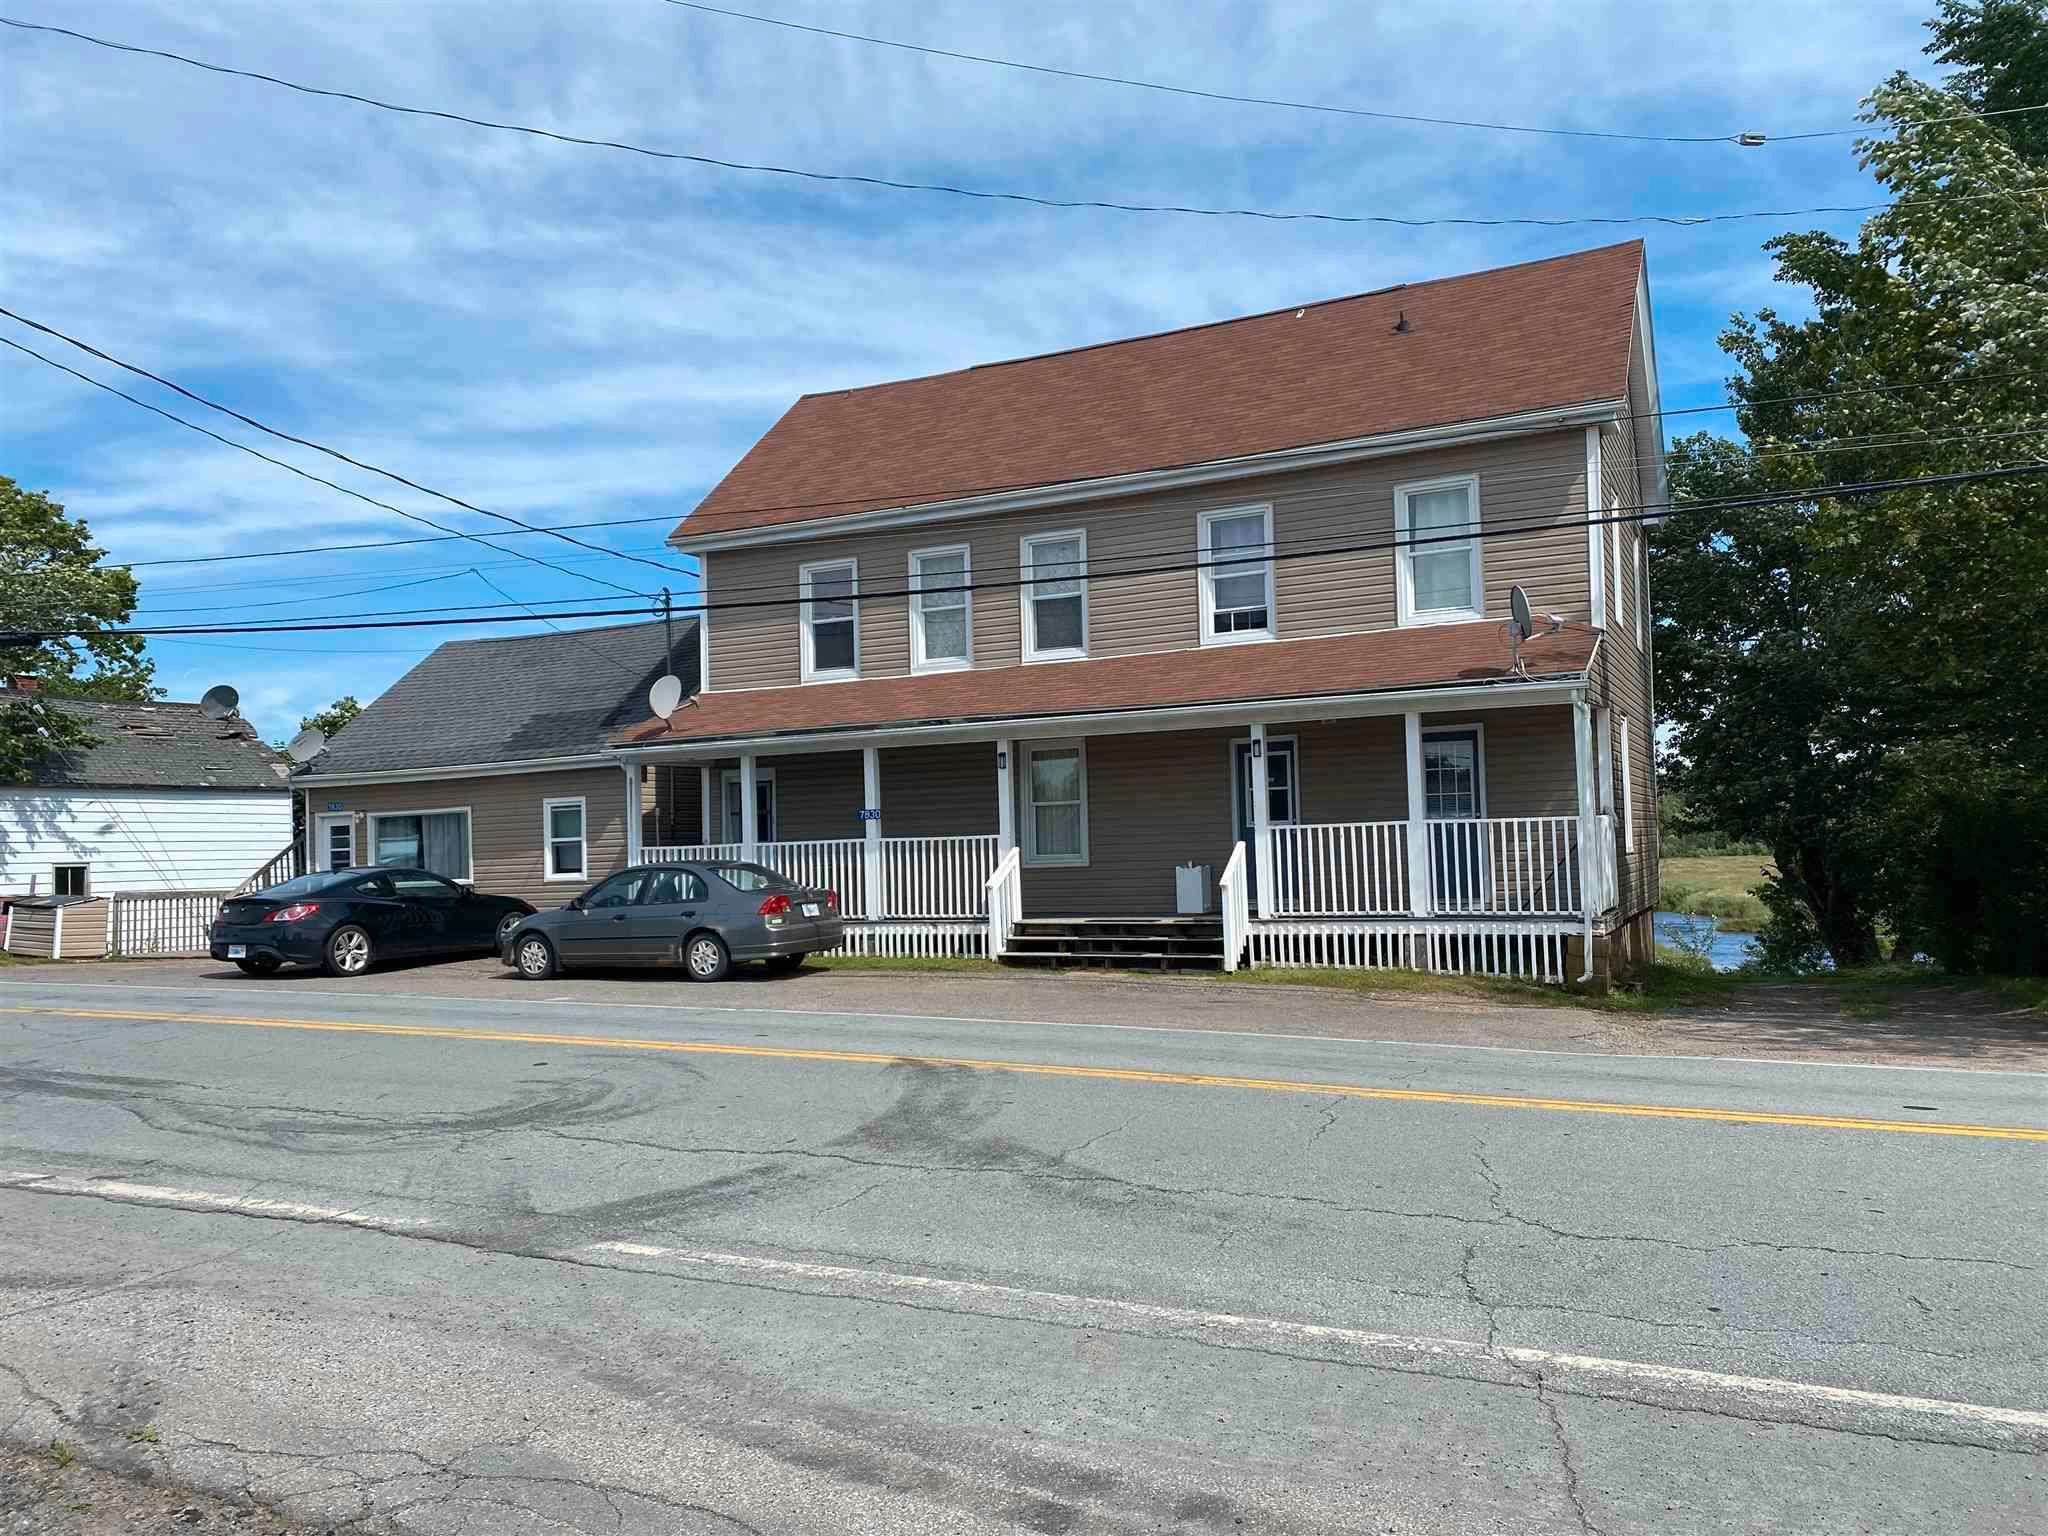 Main Photo: 7830 357 Highway in Middle Musquodoboit: 35-Halifax County East Multi-Family for sale (Halifax-Dartmouth)  : MLS®# 202118230